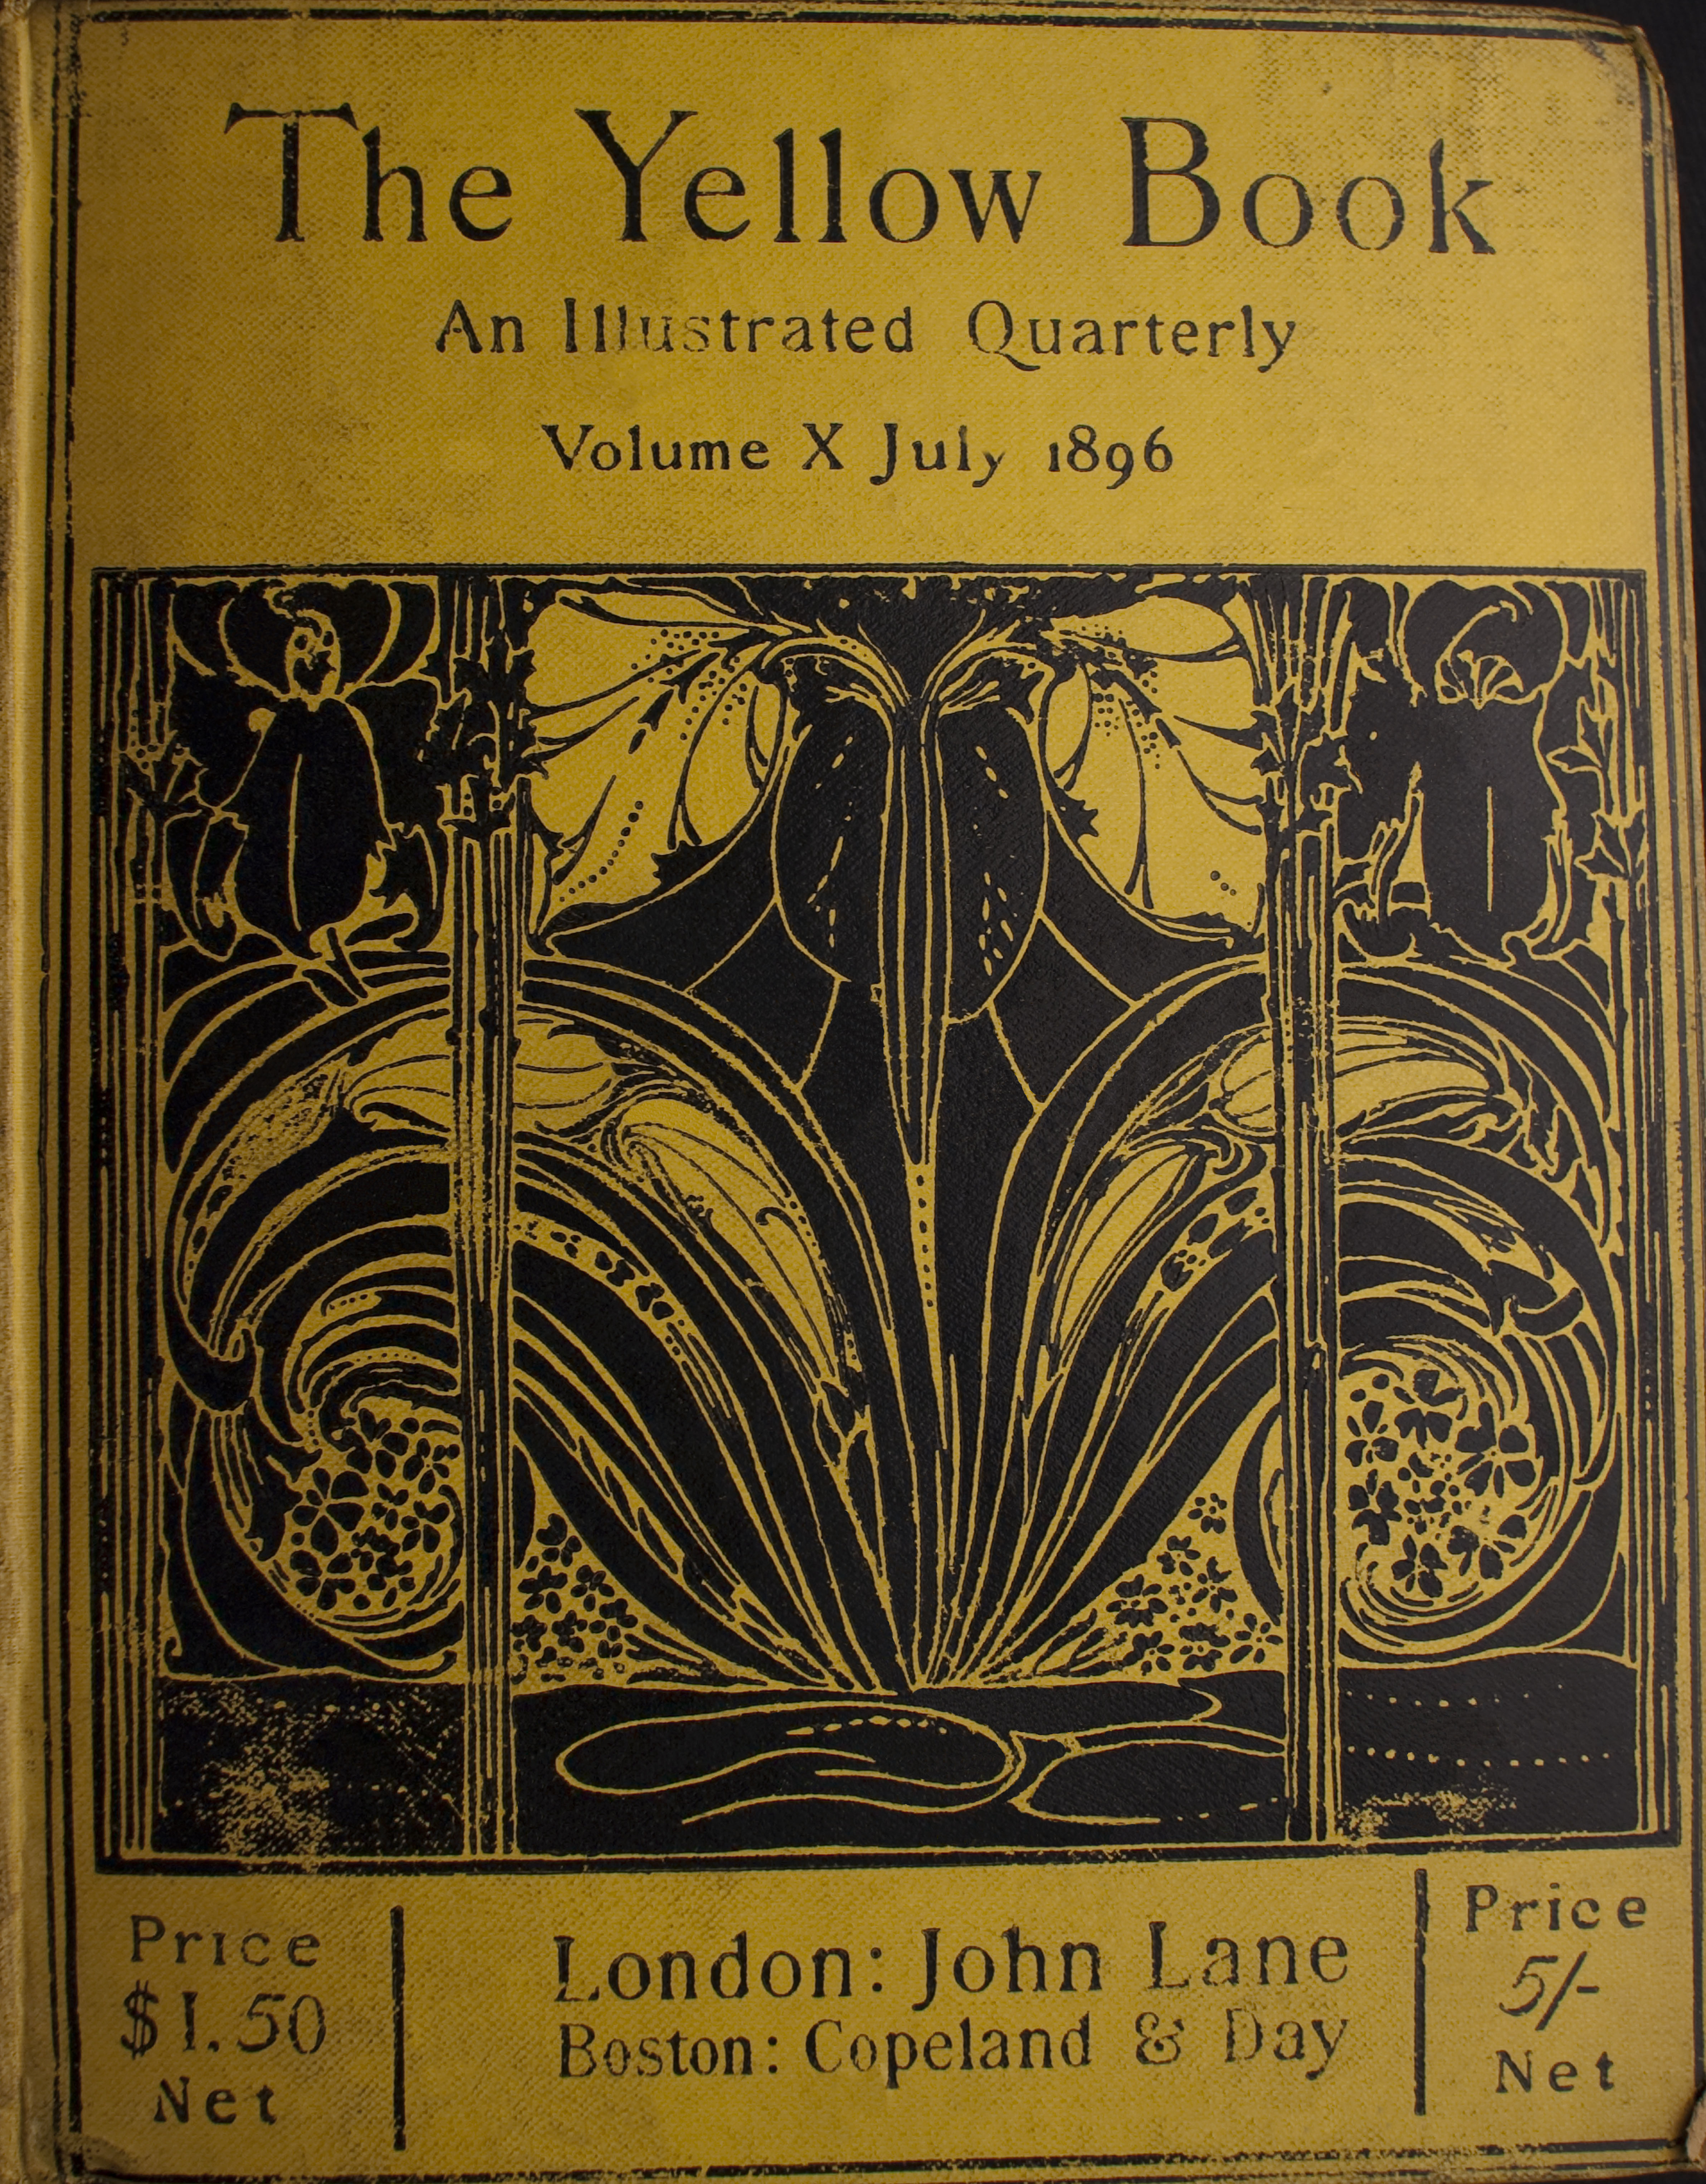 Cover of The Yellow Book Volume 10